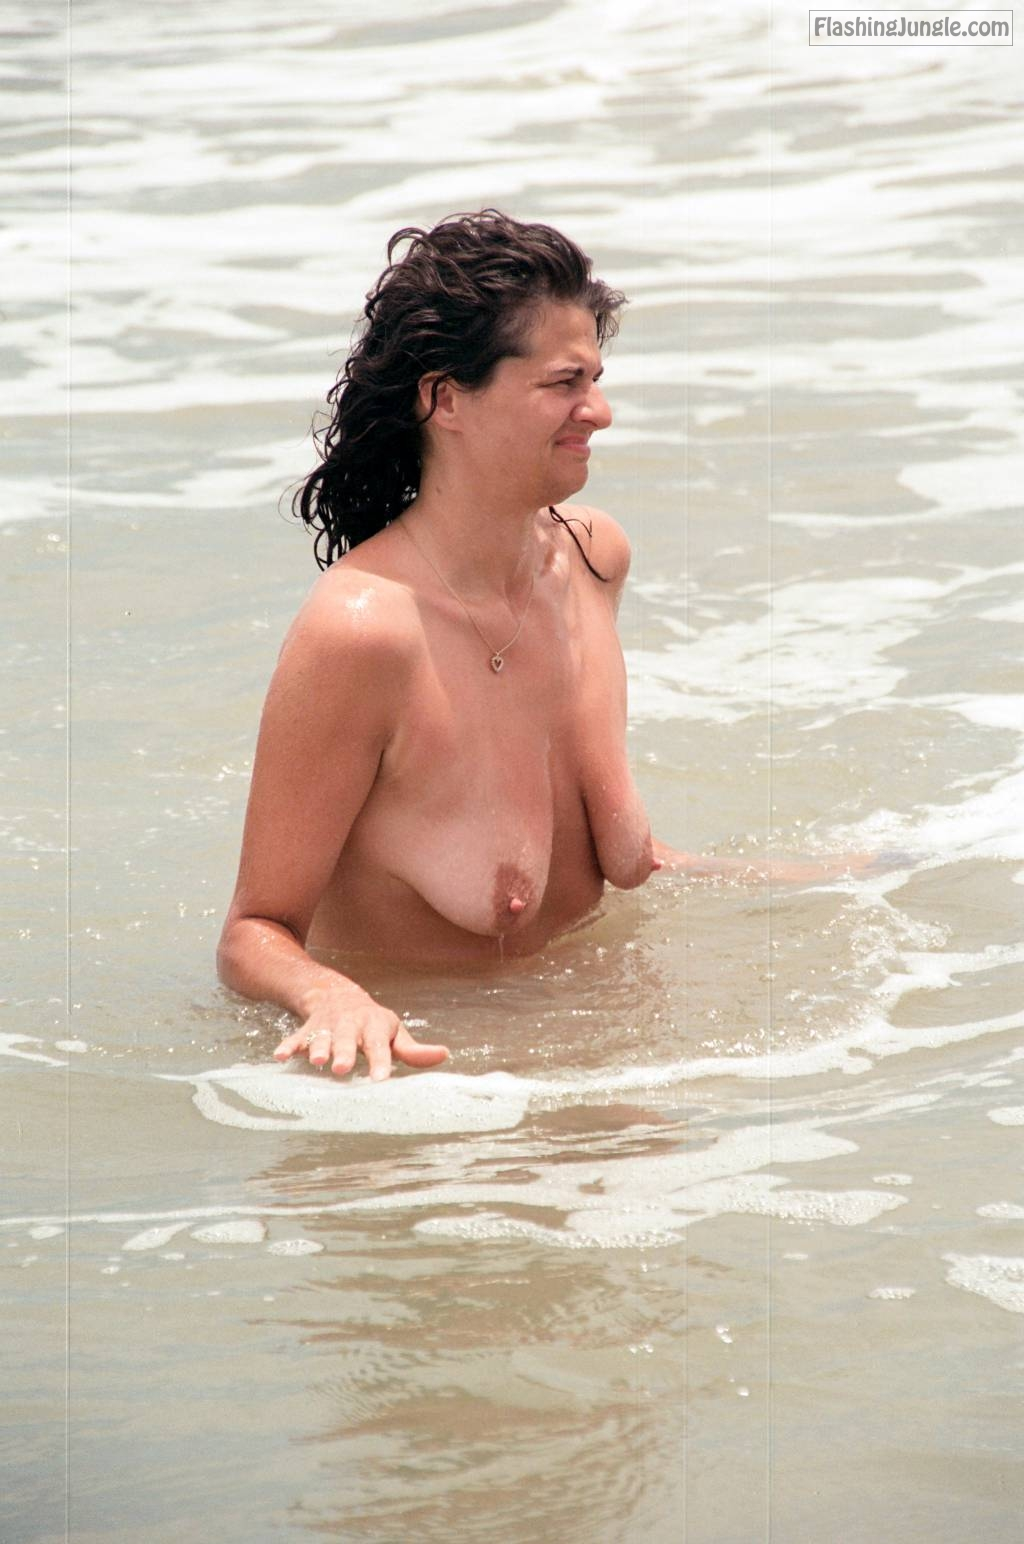 More Outdoor Exposure Beach & Fishing for Slut Wife Terry Webb sex stories real nudity public nudity milf pics howife bitch